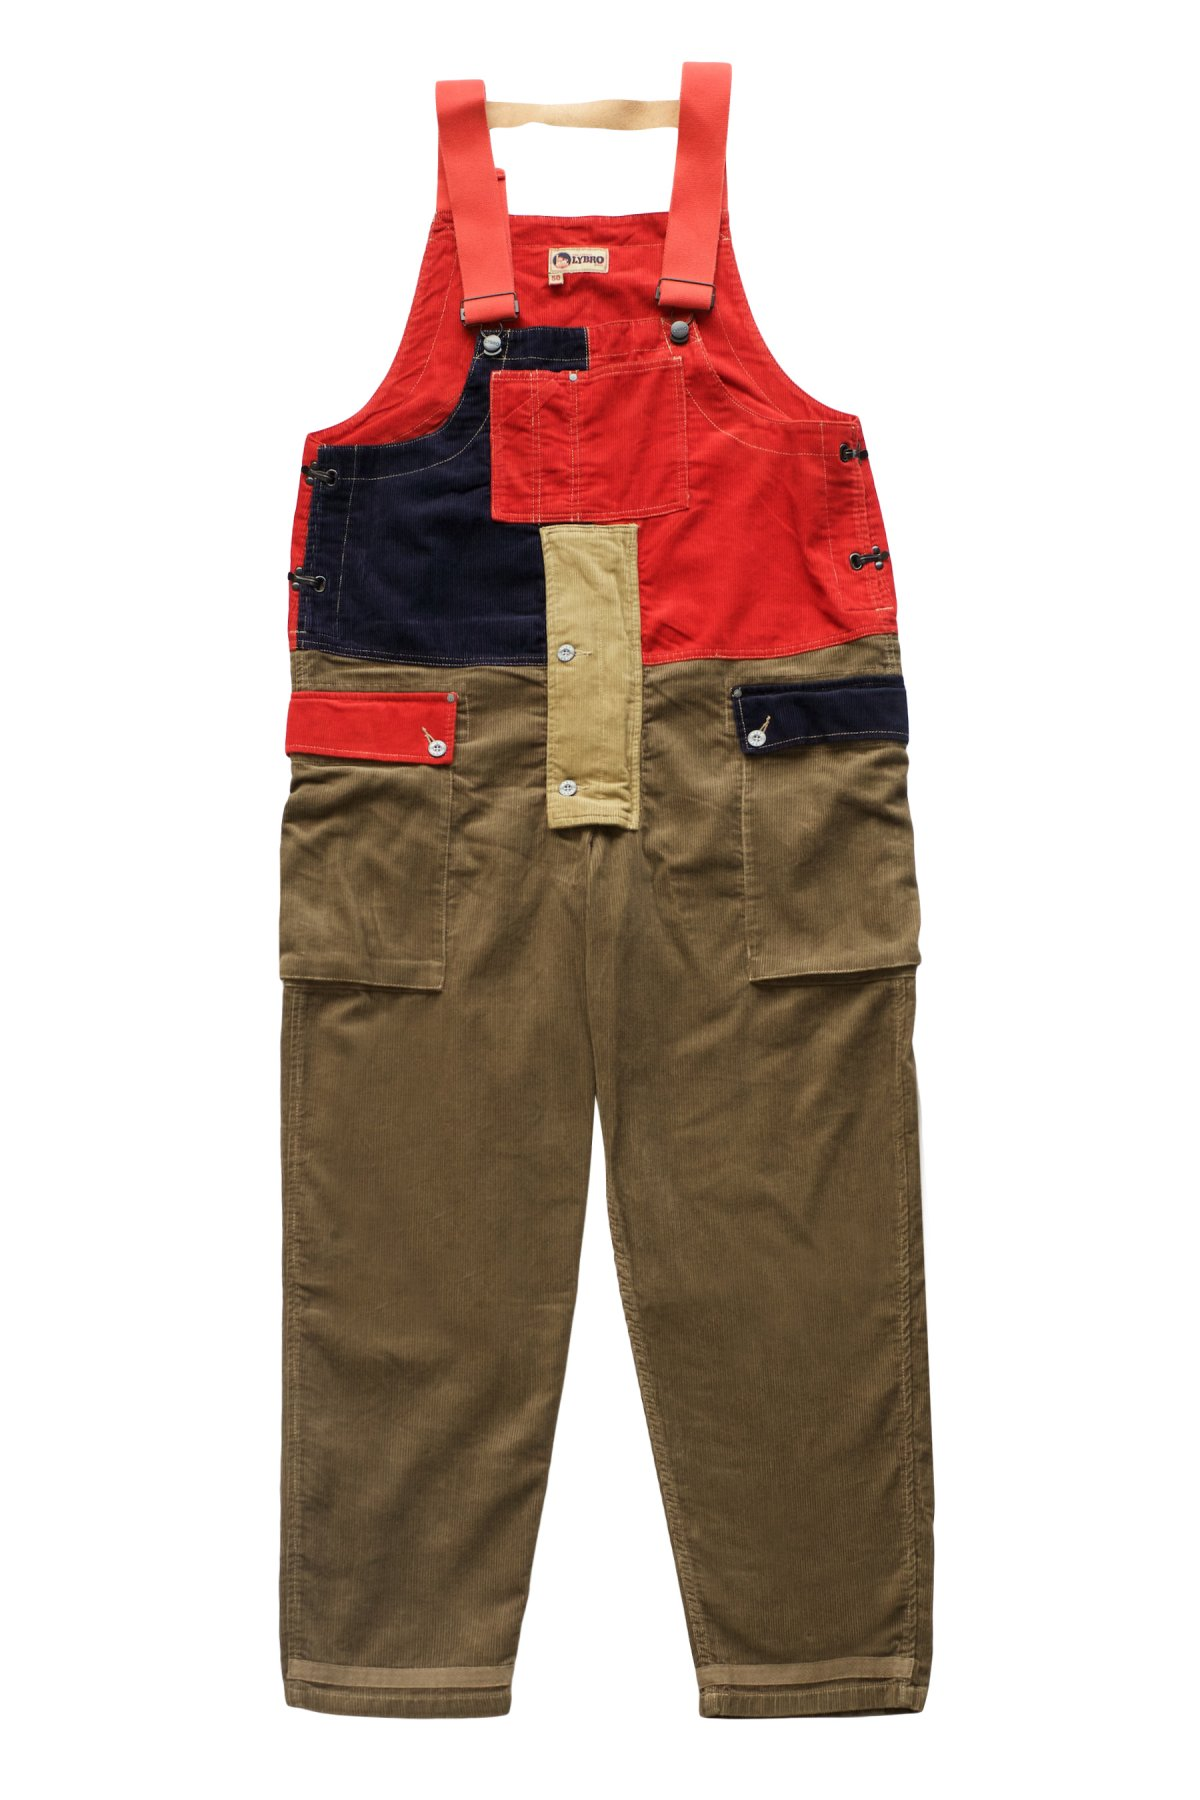 Nigel Cabourn -  LYBRO CRAZY NAVAL DUNGAREE - MIX PRICE 46,200 tax-in